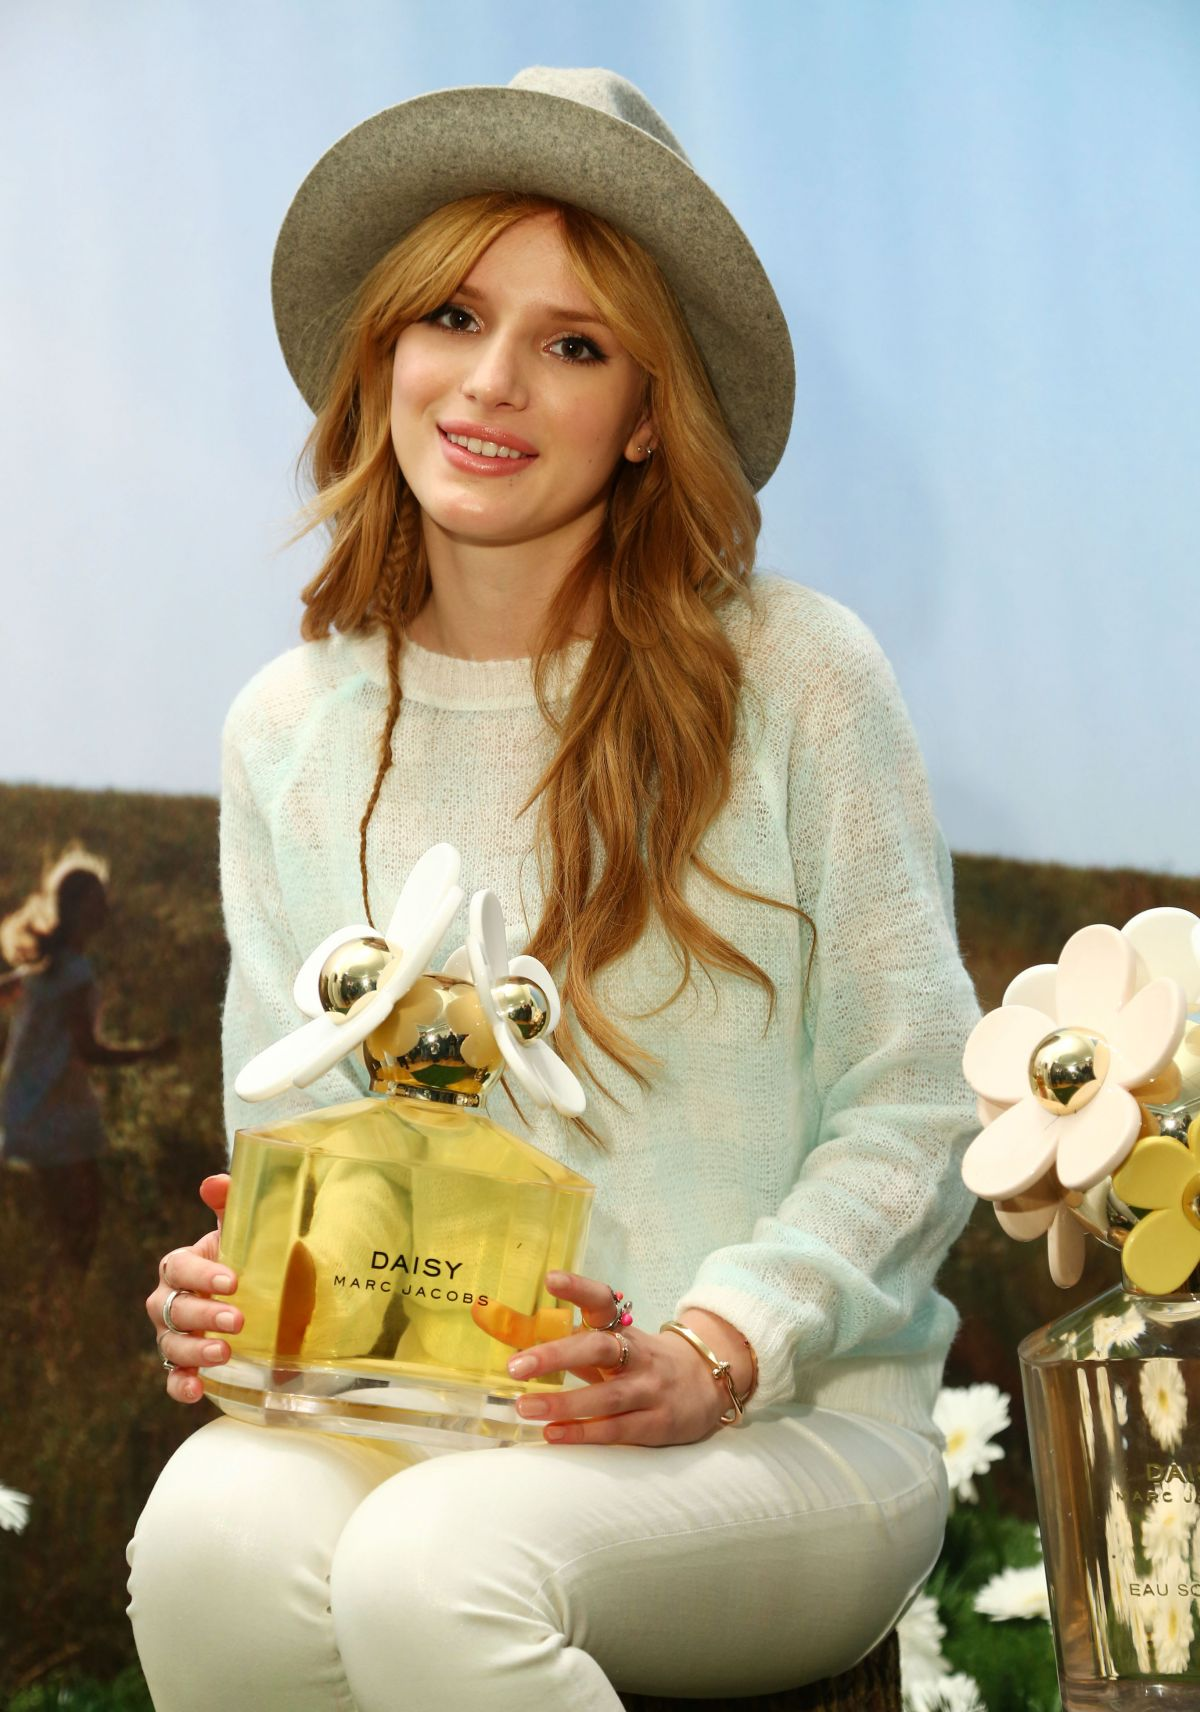 BELLA THORNE at Marc Jacobs Daisy Tweet Shop in New York